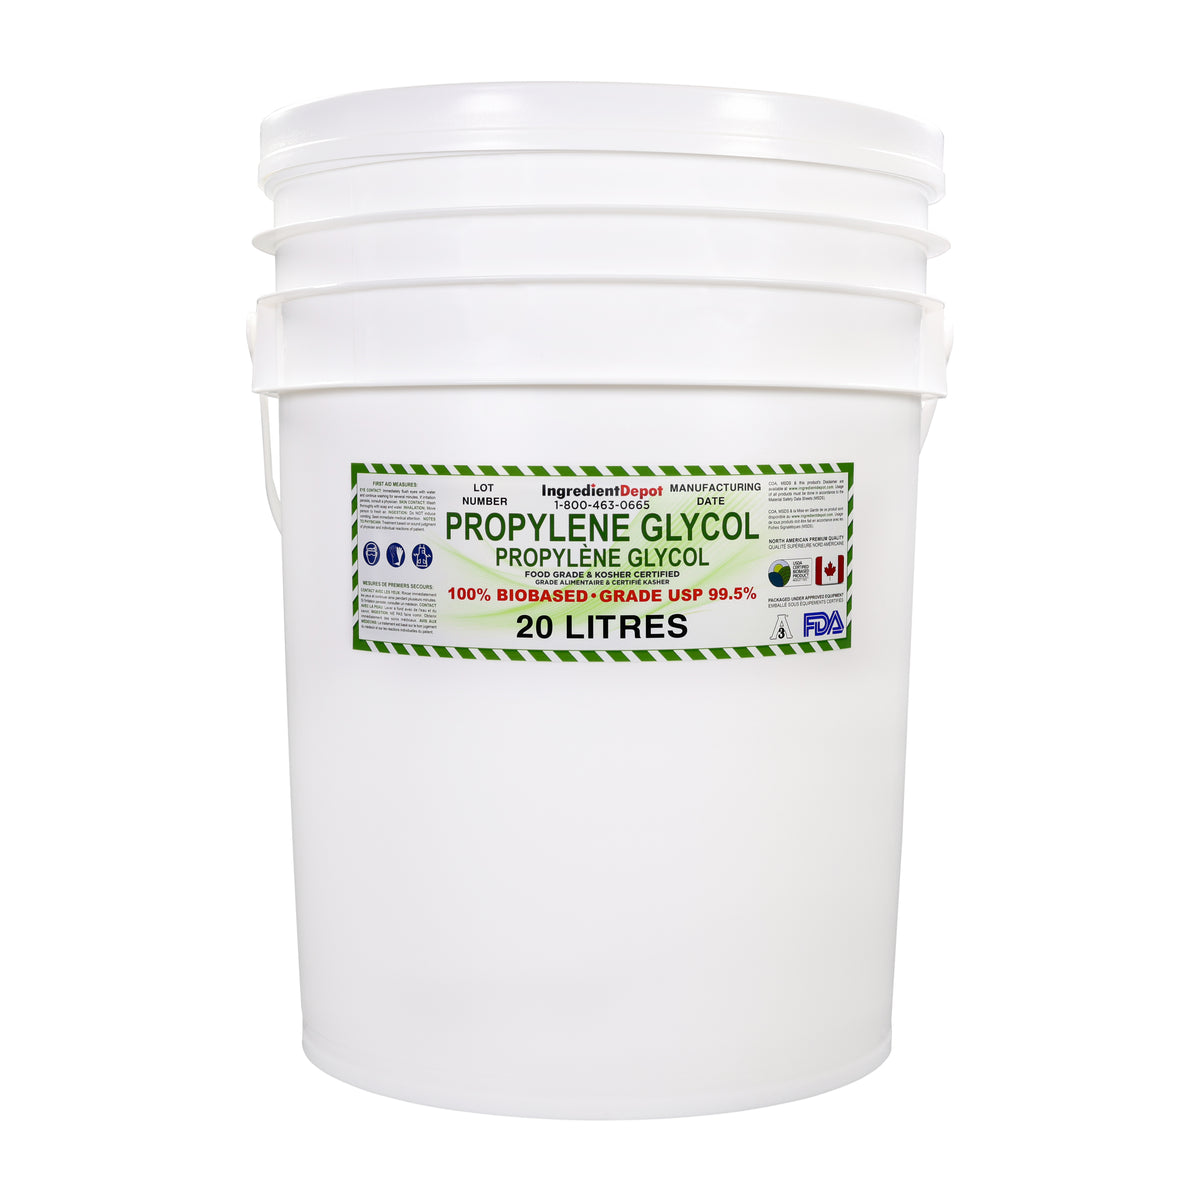 Propylene Glycol North American PG 99.5% USP 100% BIOBASED | 20 litres in a Pail